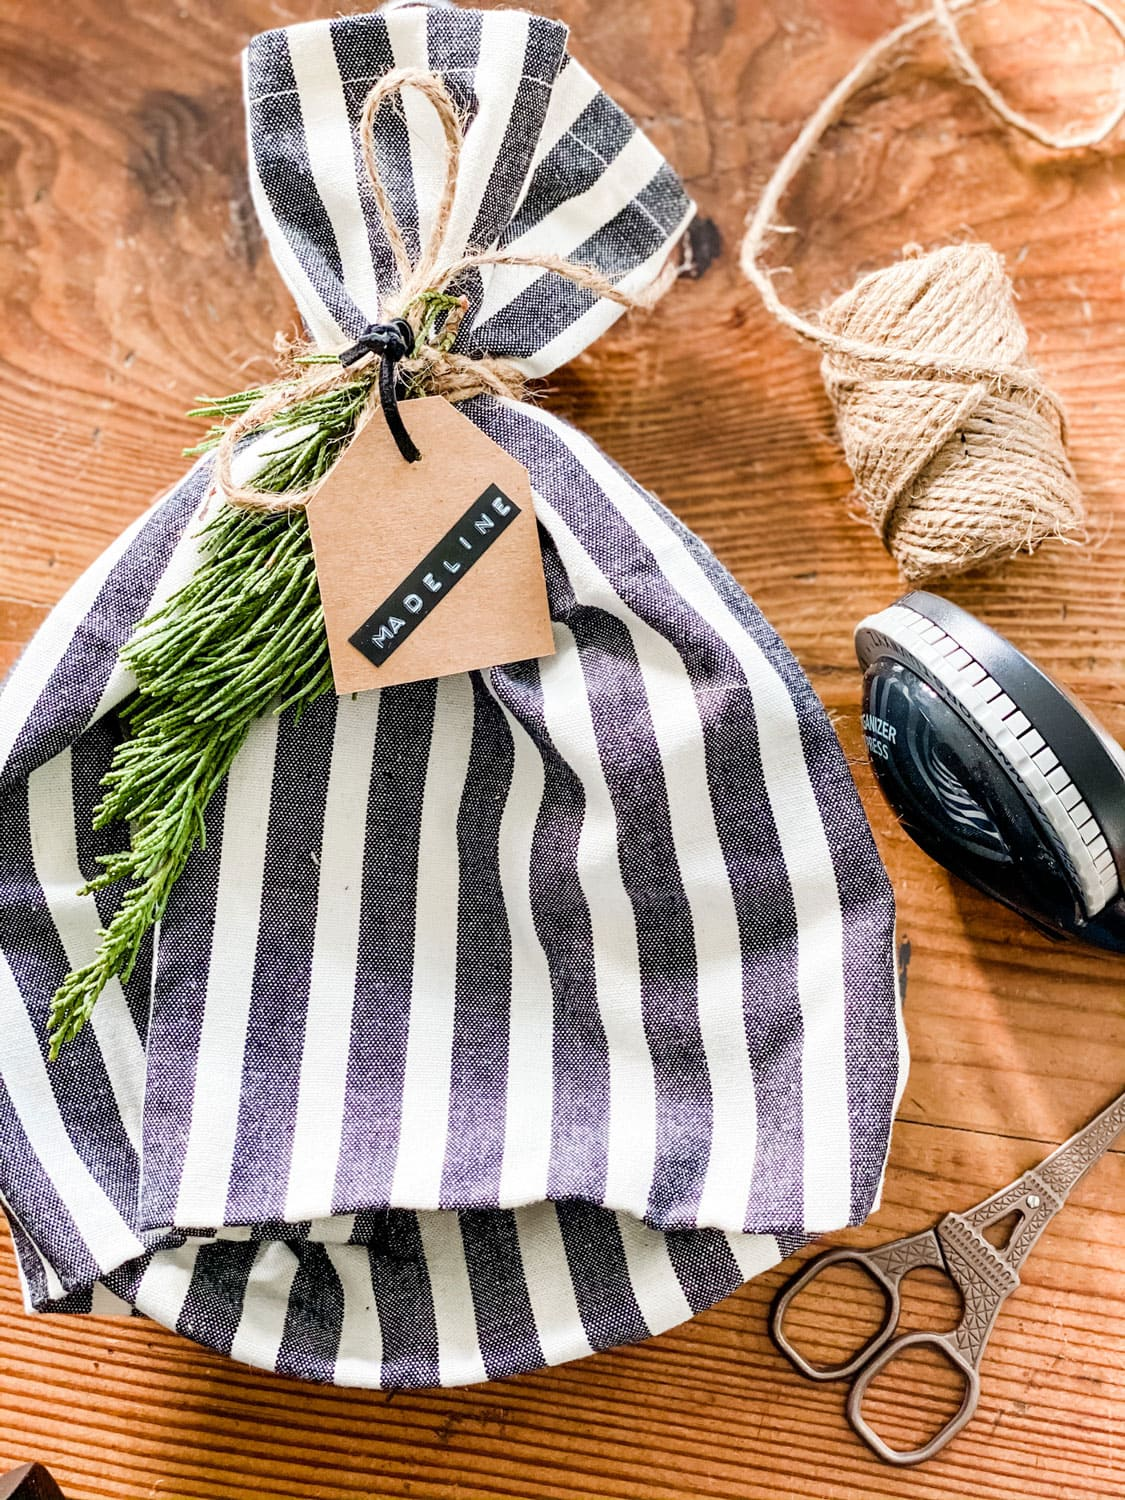 A black and white striped dish towel to wrap a gift with a tag and fresh greens